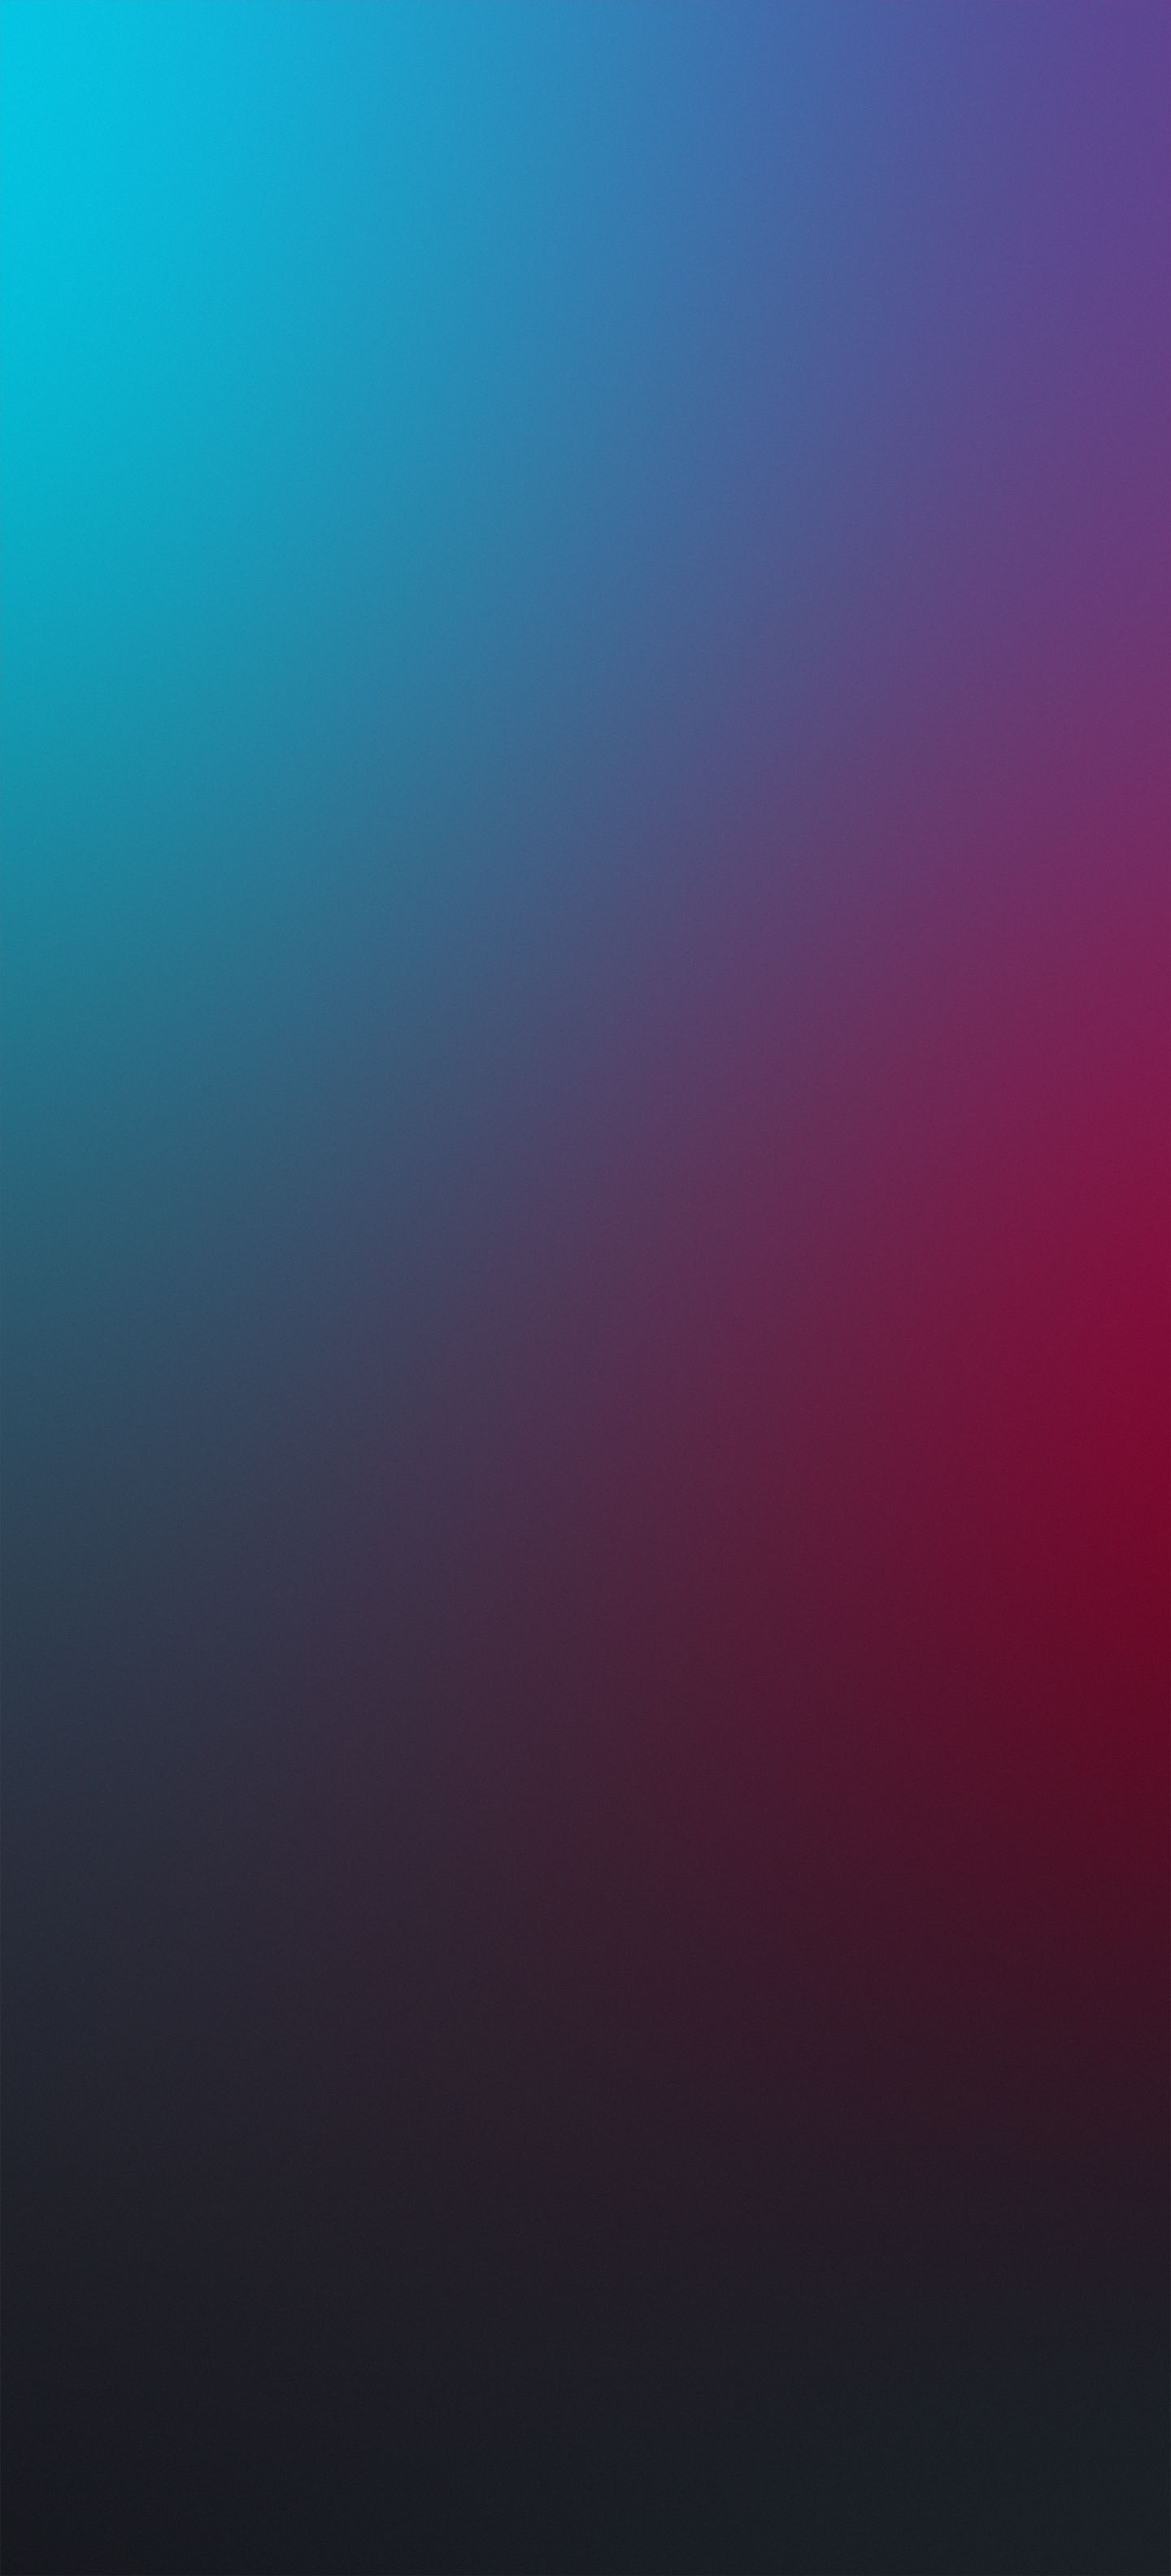 iOS 14 Wallpaper in 2020 Blue background images Red wallpaper 1440x3168